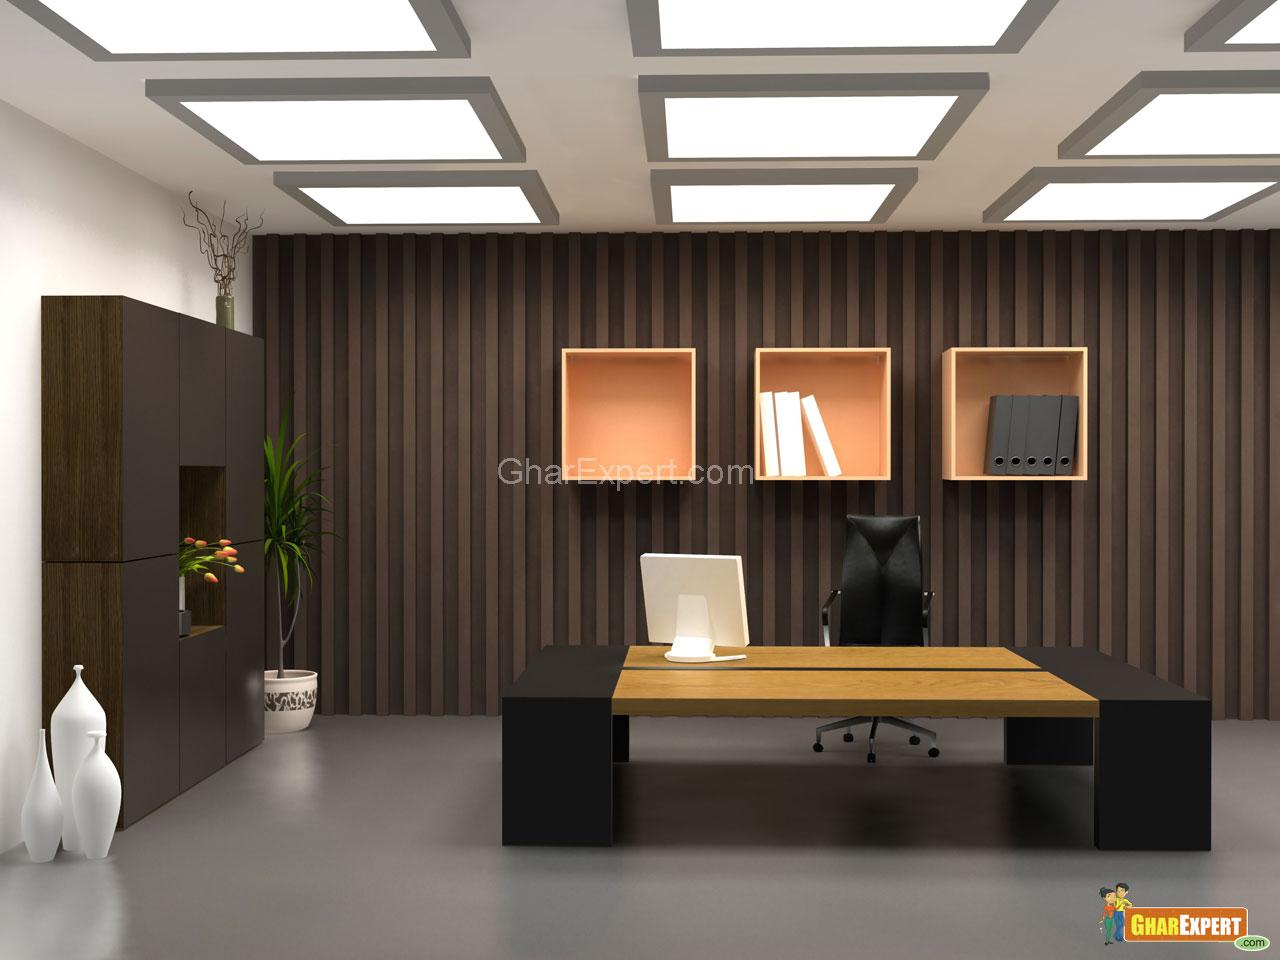 Office Interior GharExpert